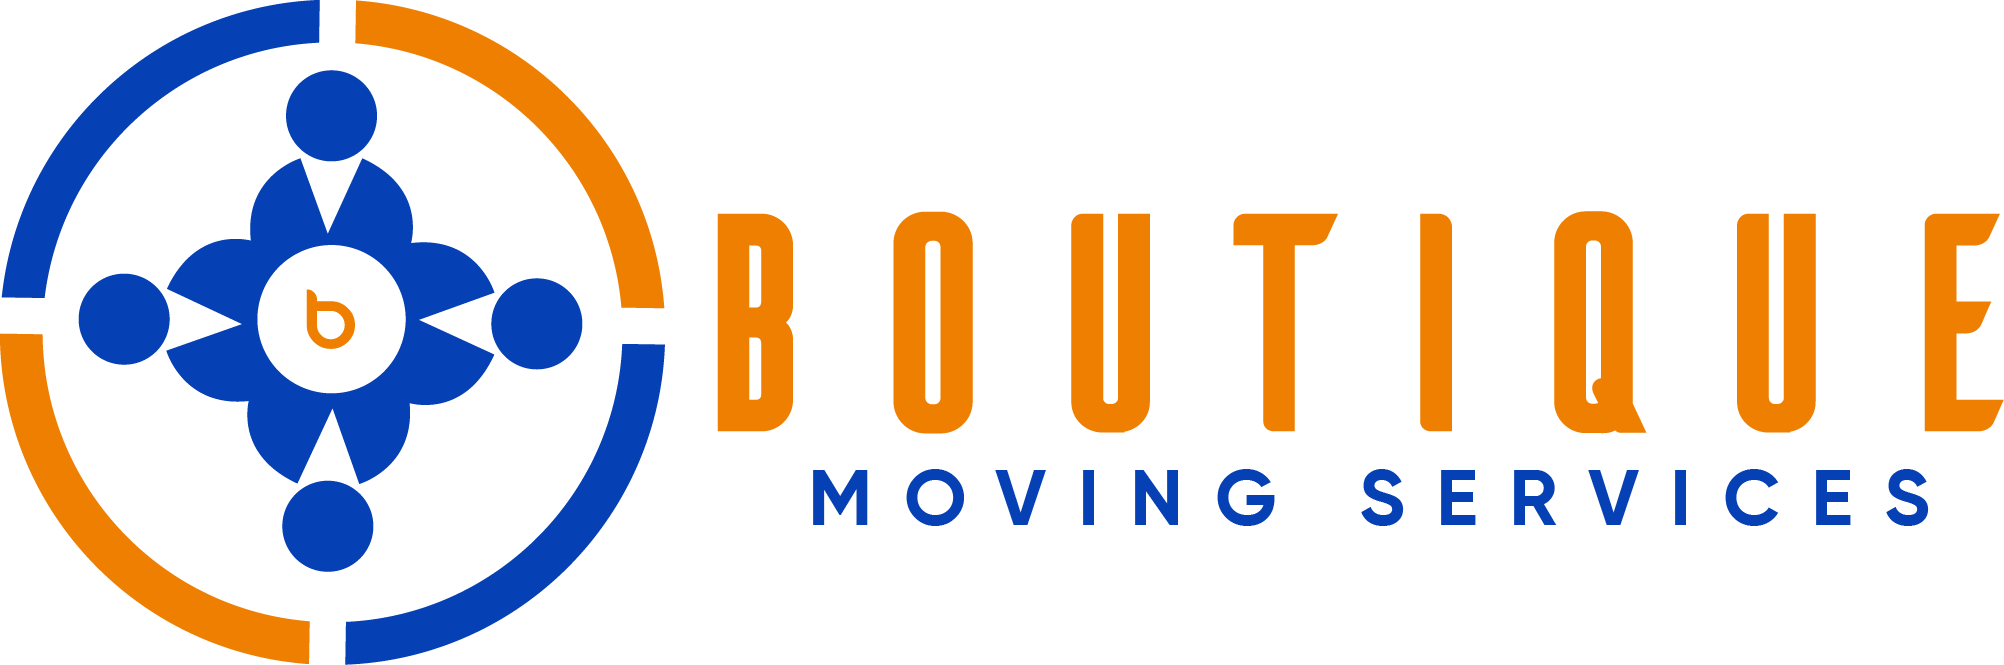 Boutique Moving Services Launches Brand New Website to Bring its Moving Services to the Locals in the Bay Areas of California